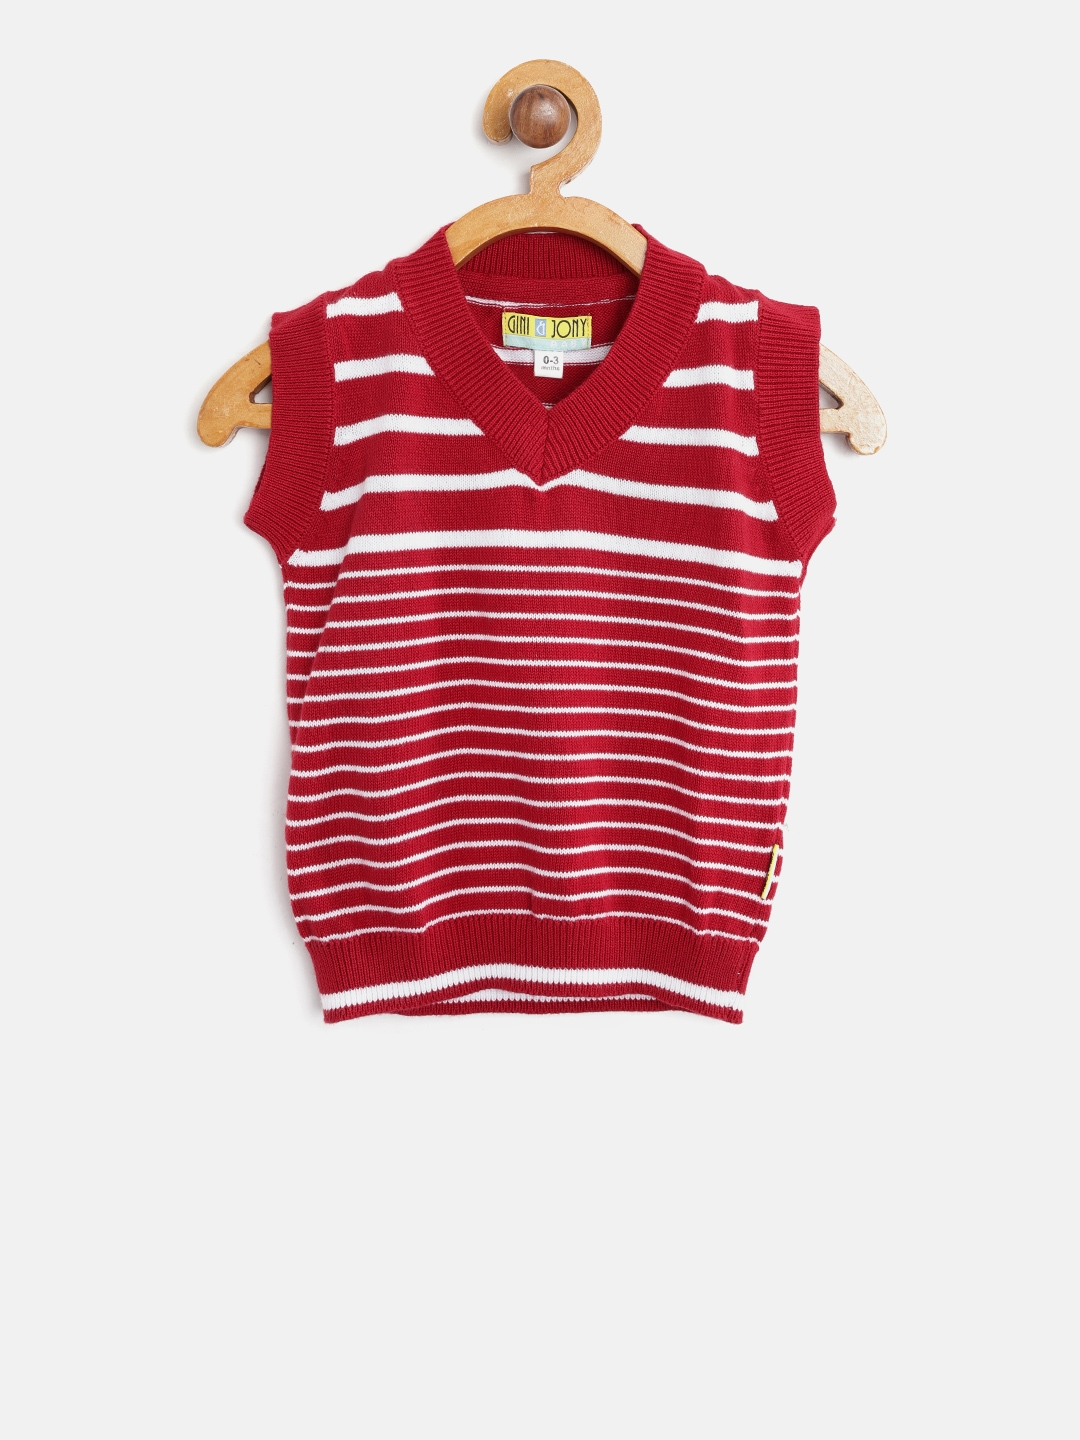 4a5cabd8f Buy Gini And Jony Boys Red   White Striped Sweater Vest - Sweaters ...